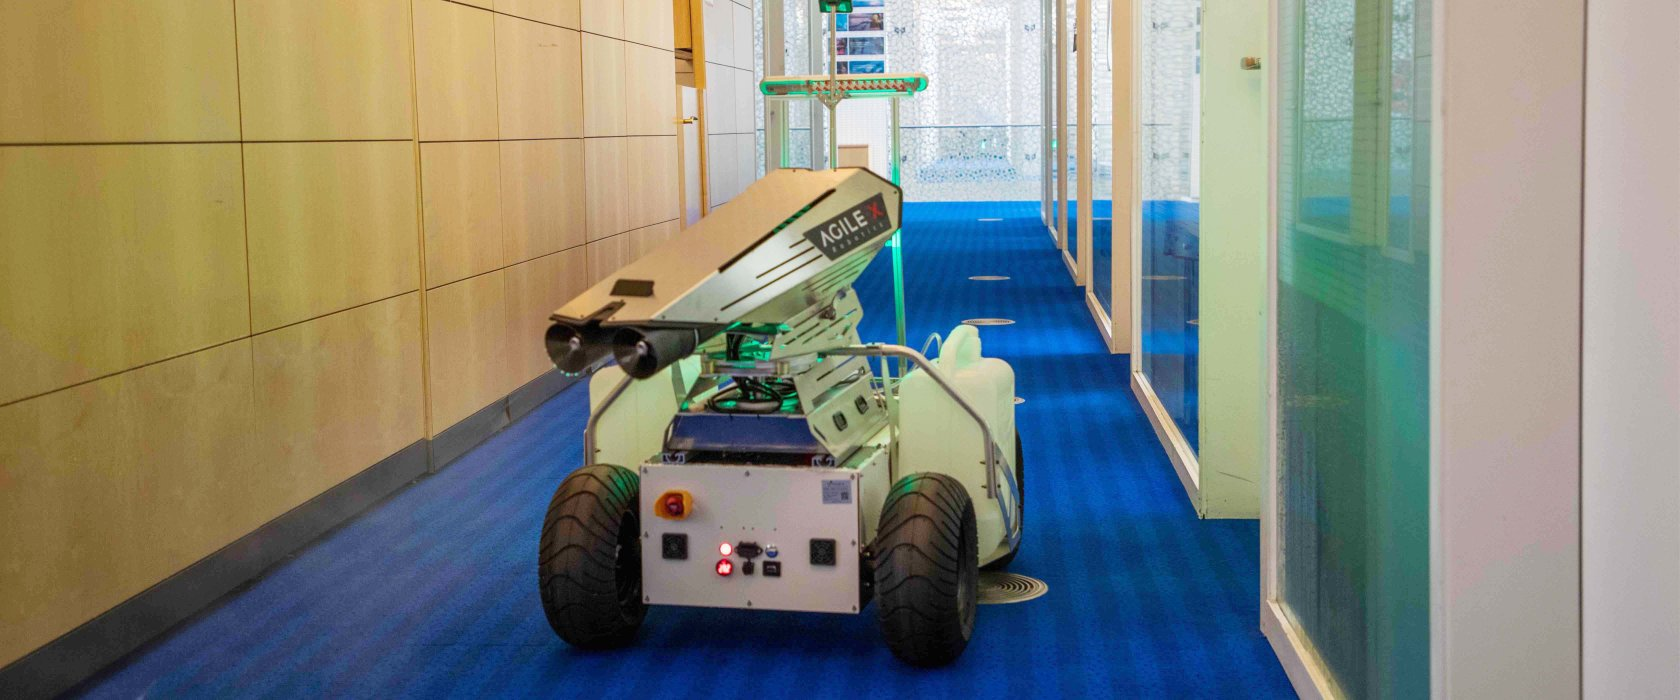 The QF student's robot that is a security guard by day, and a cleaner by night